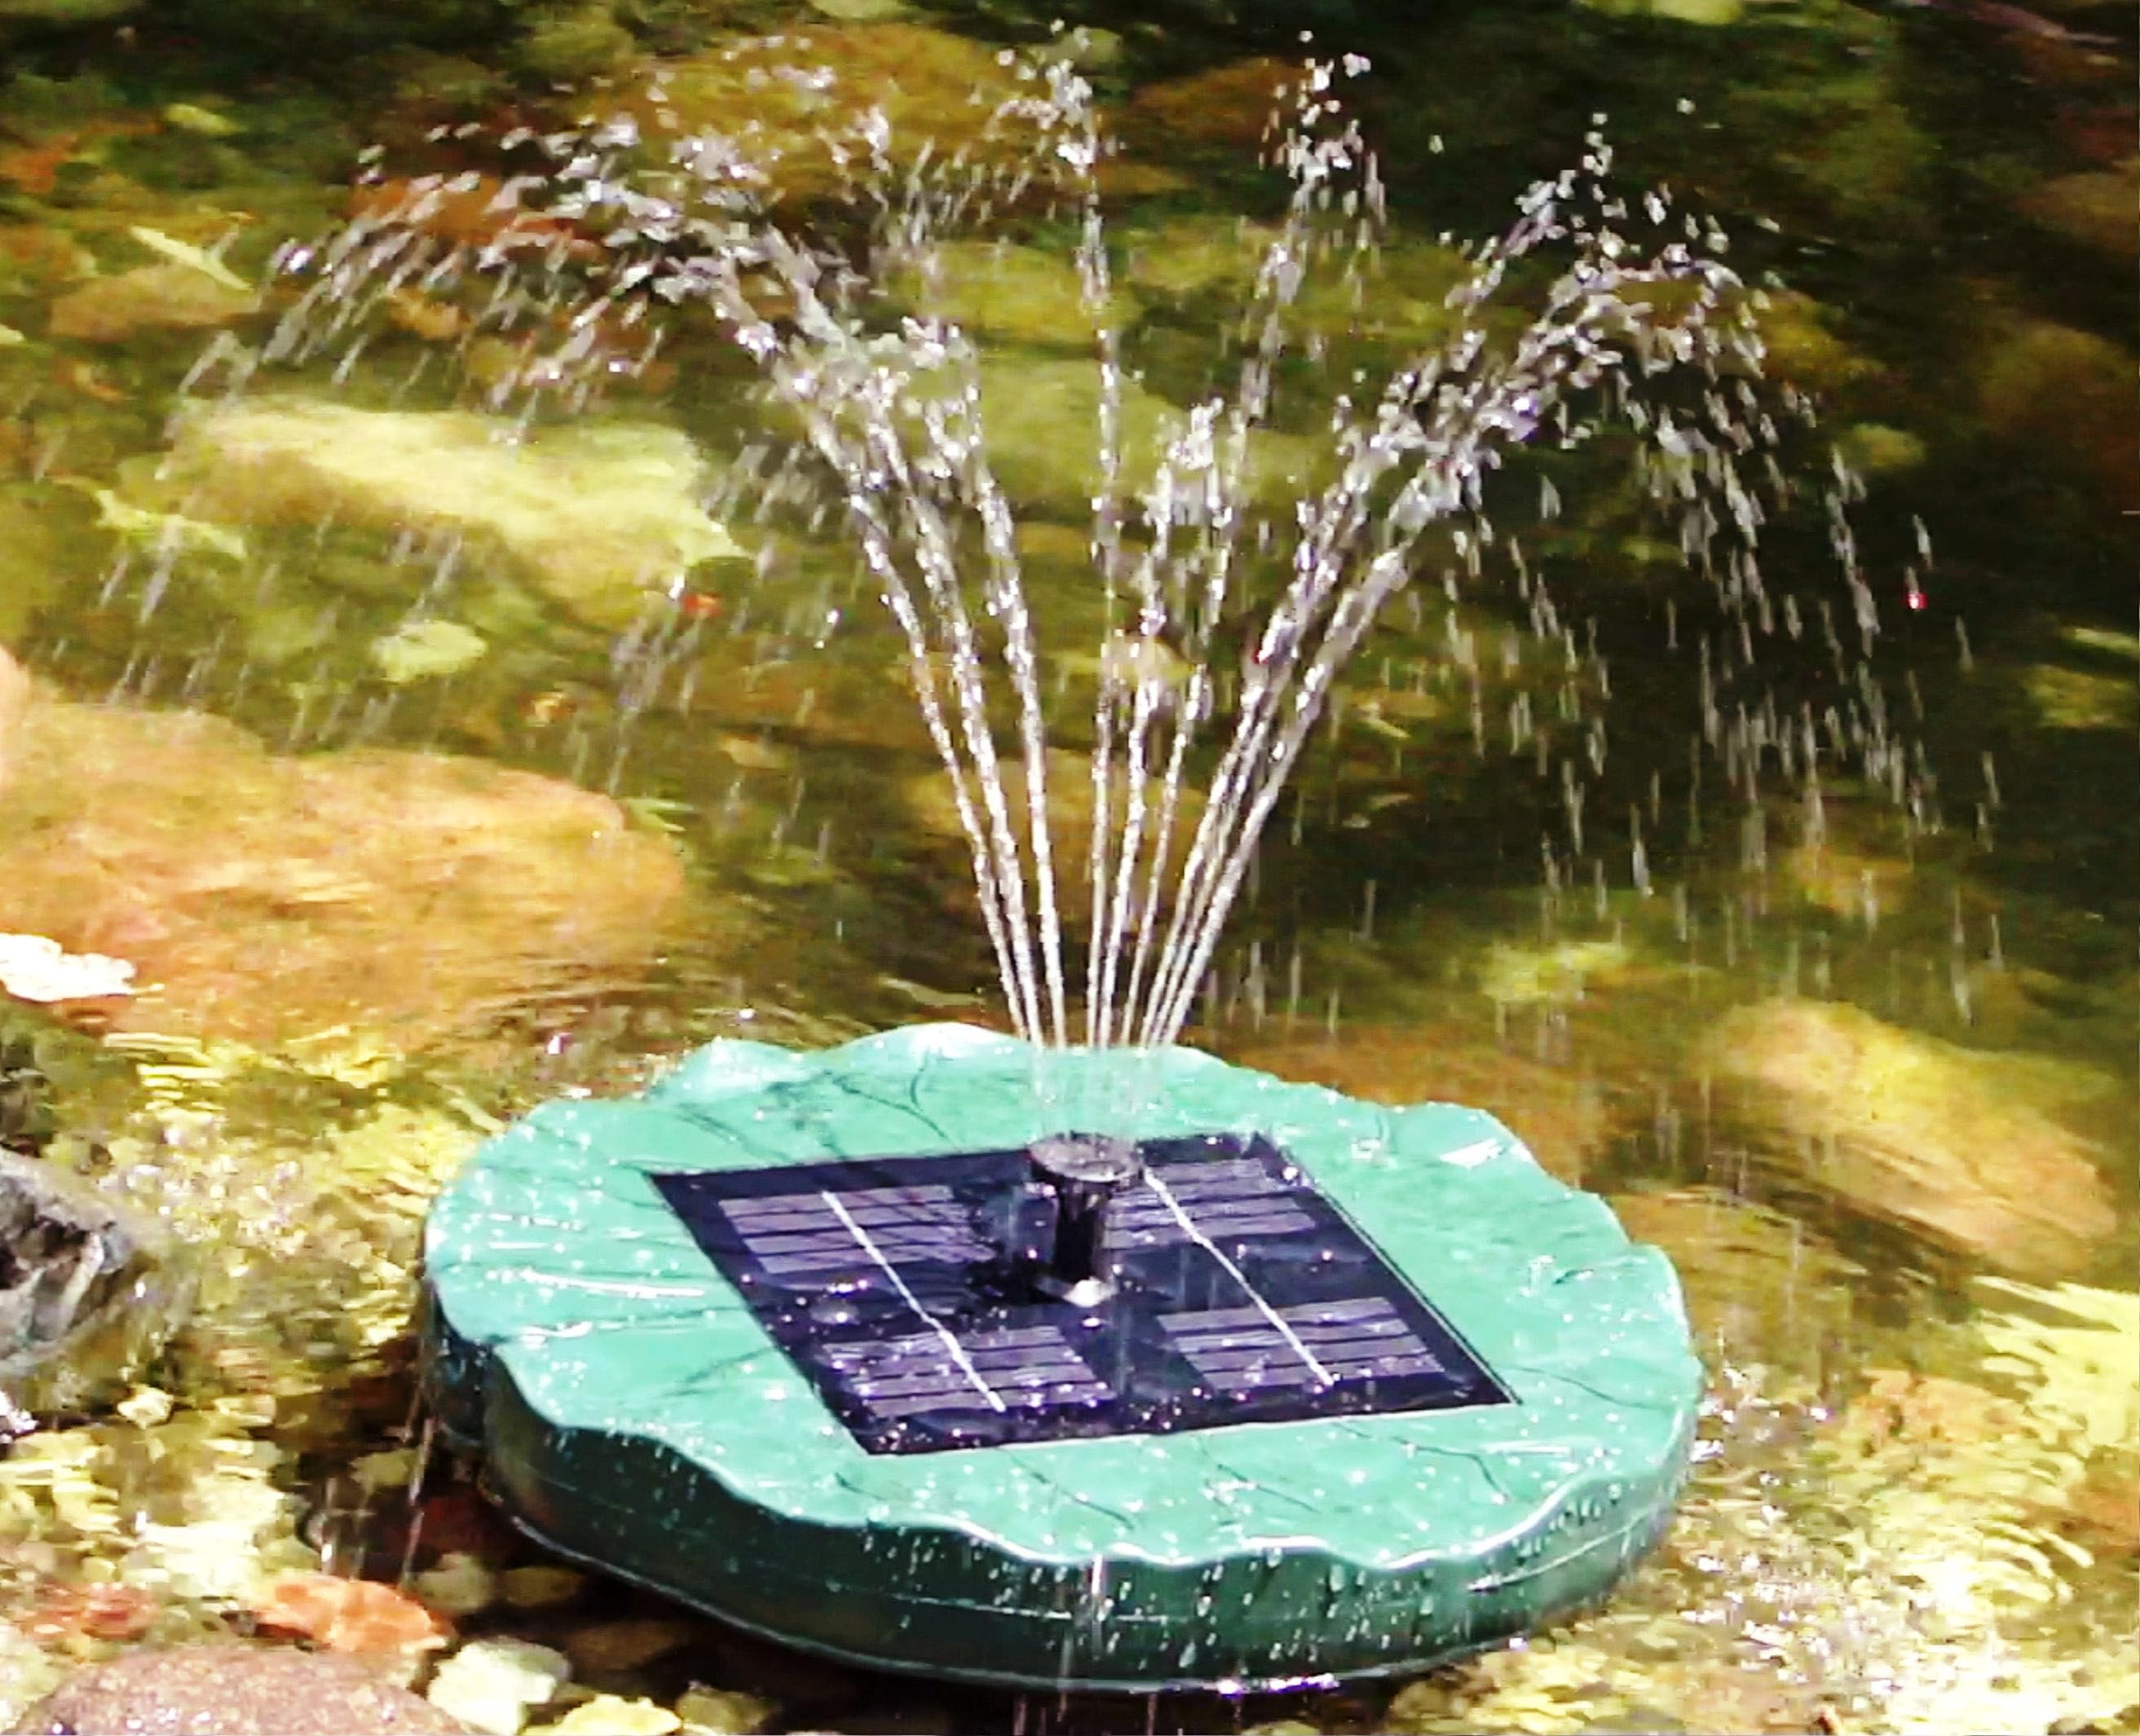 Solar powered pond fountain fountain design ideas for Waterfall features for ponds